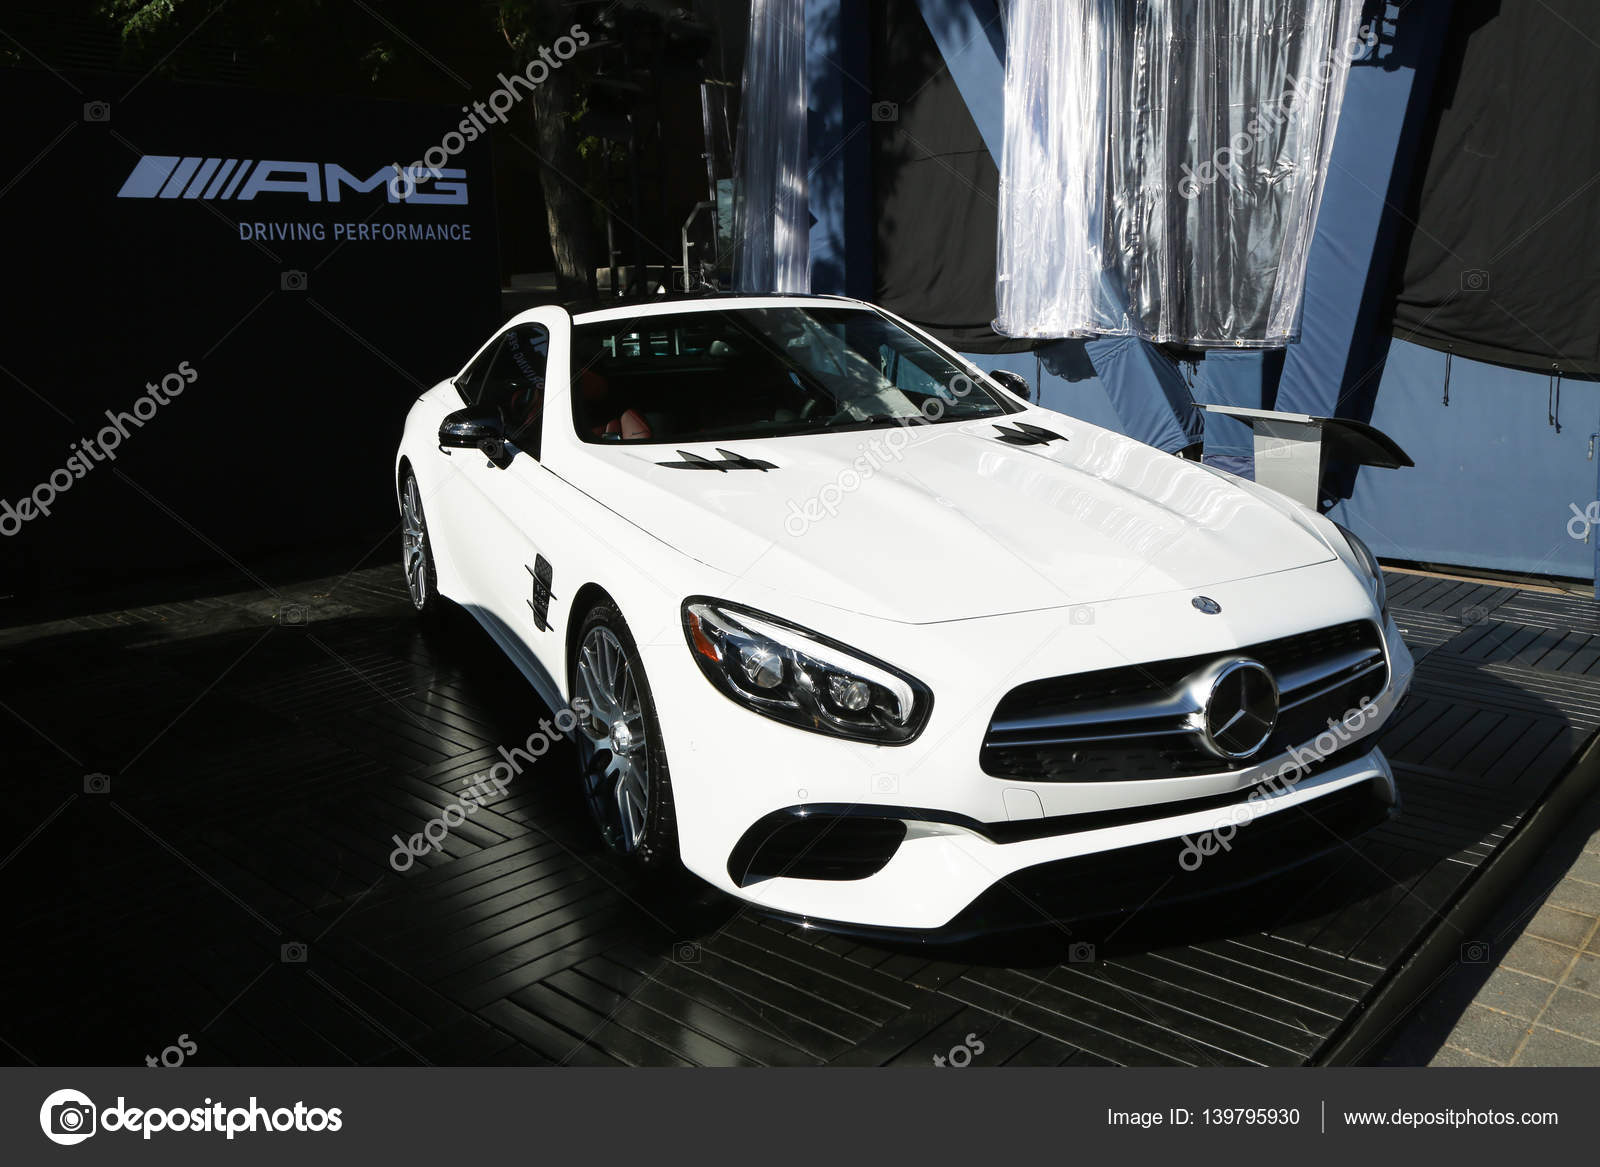 hight resolution of mercedes benz amg on display at national tennis center during us open 2016 in new